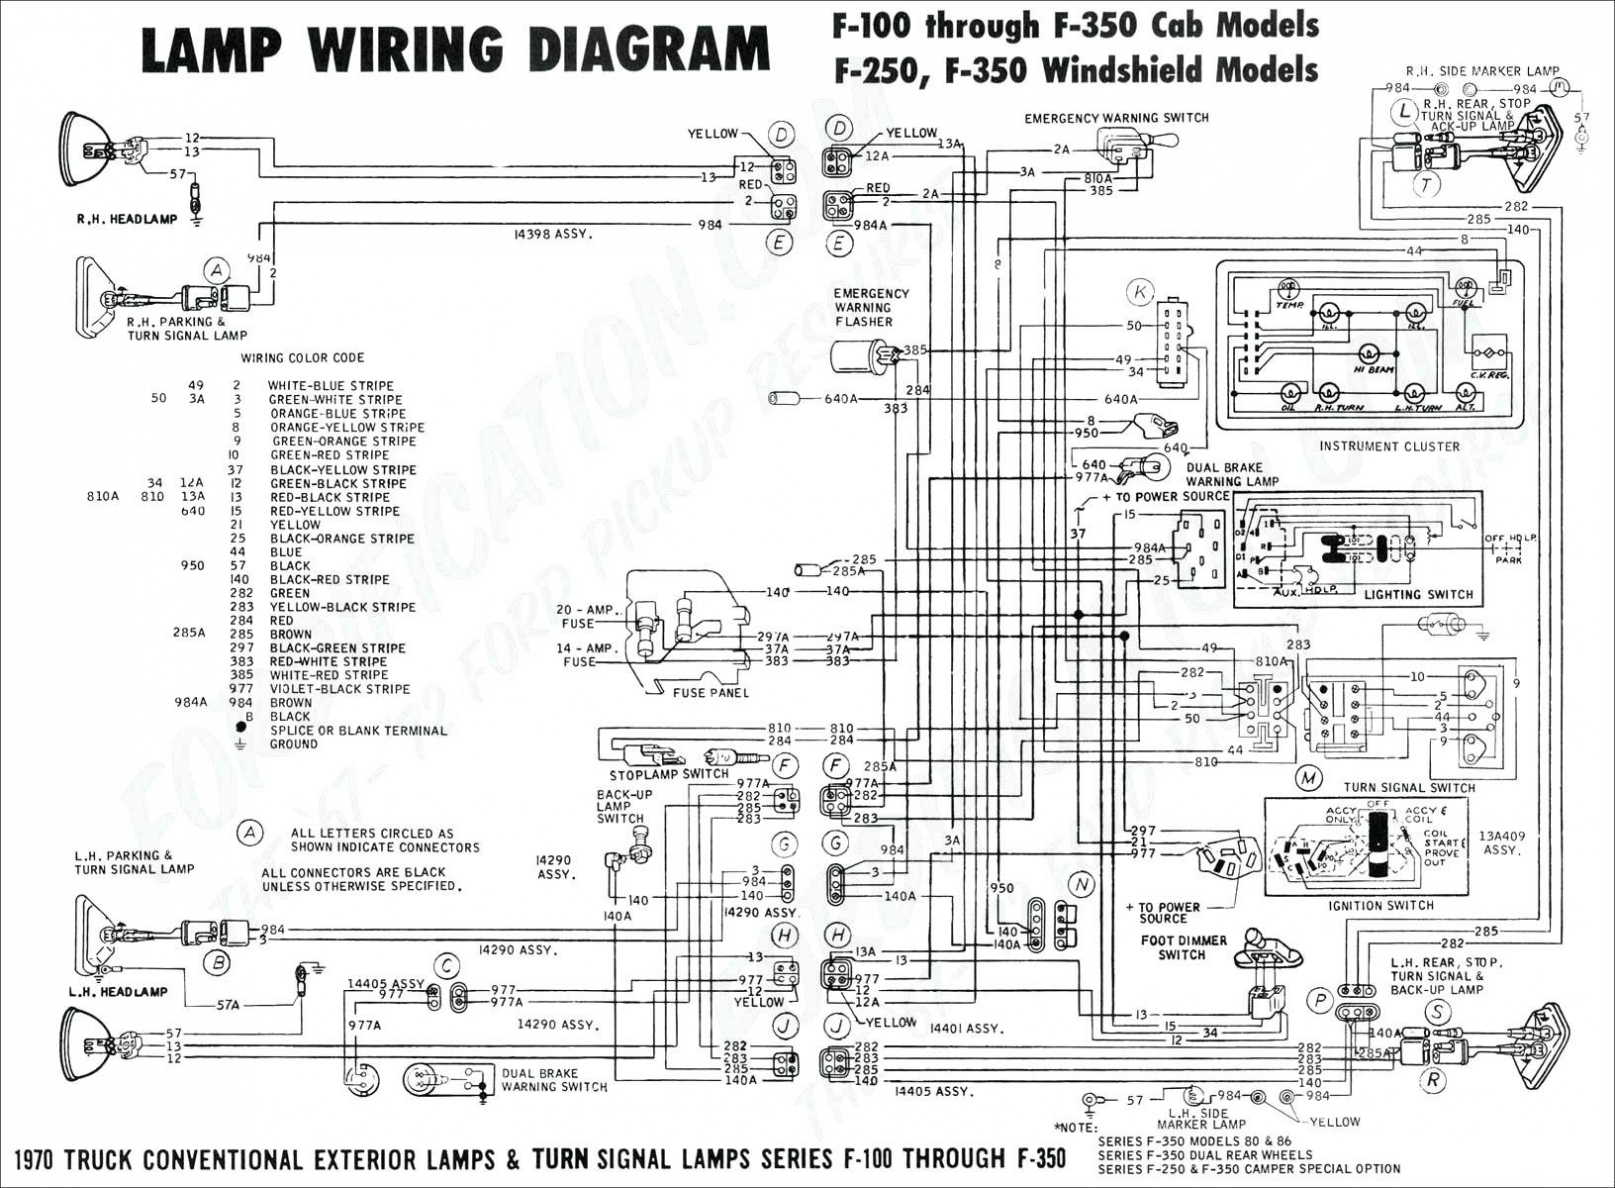 56CA9 Isuzu Nqr Engine Diagram | Digital Resources on